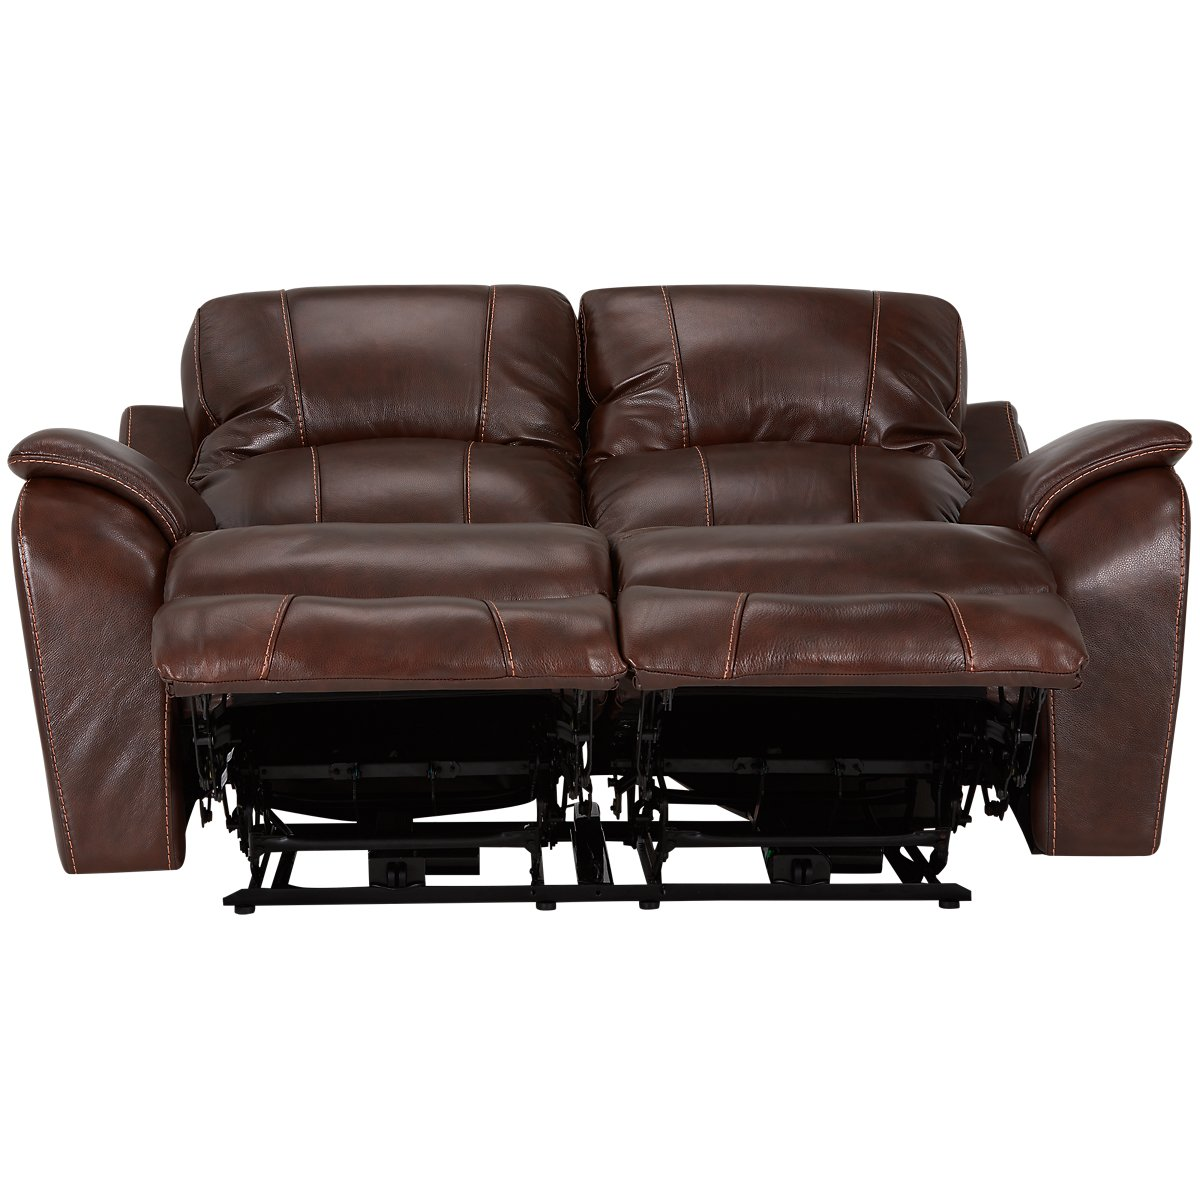 product media furniture reclining leather loveseat less rancor power image for mor seating